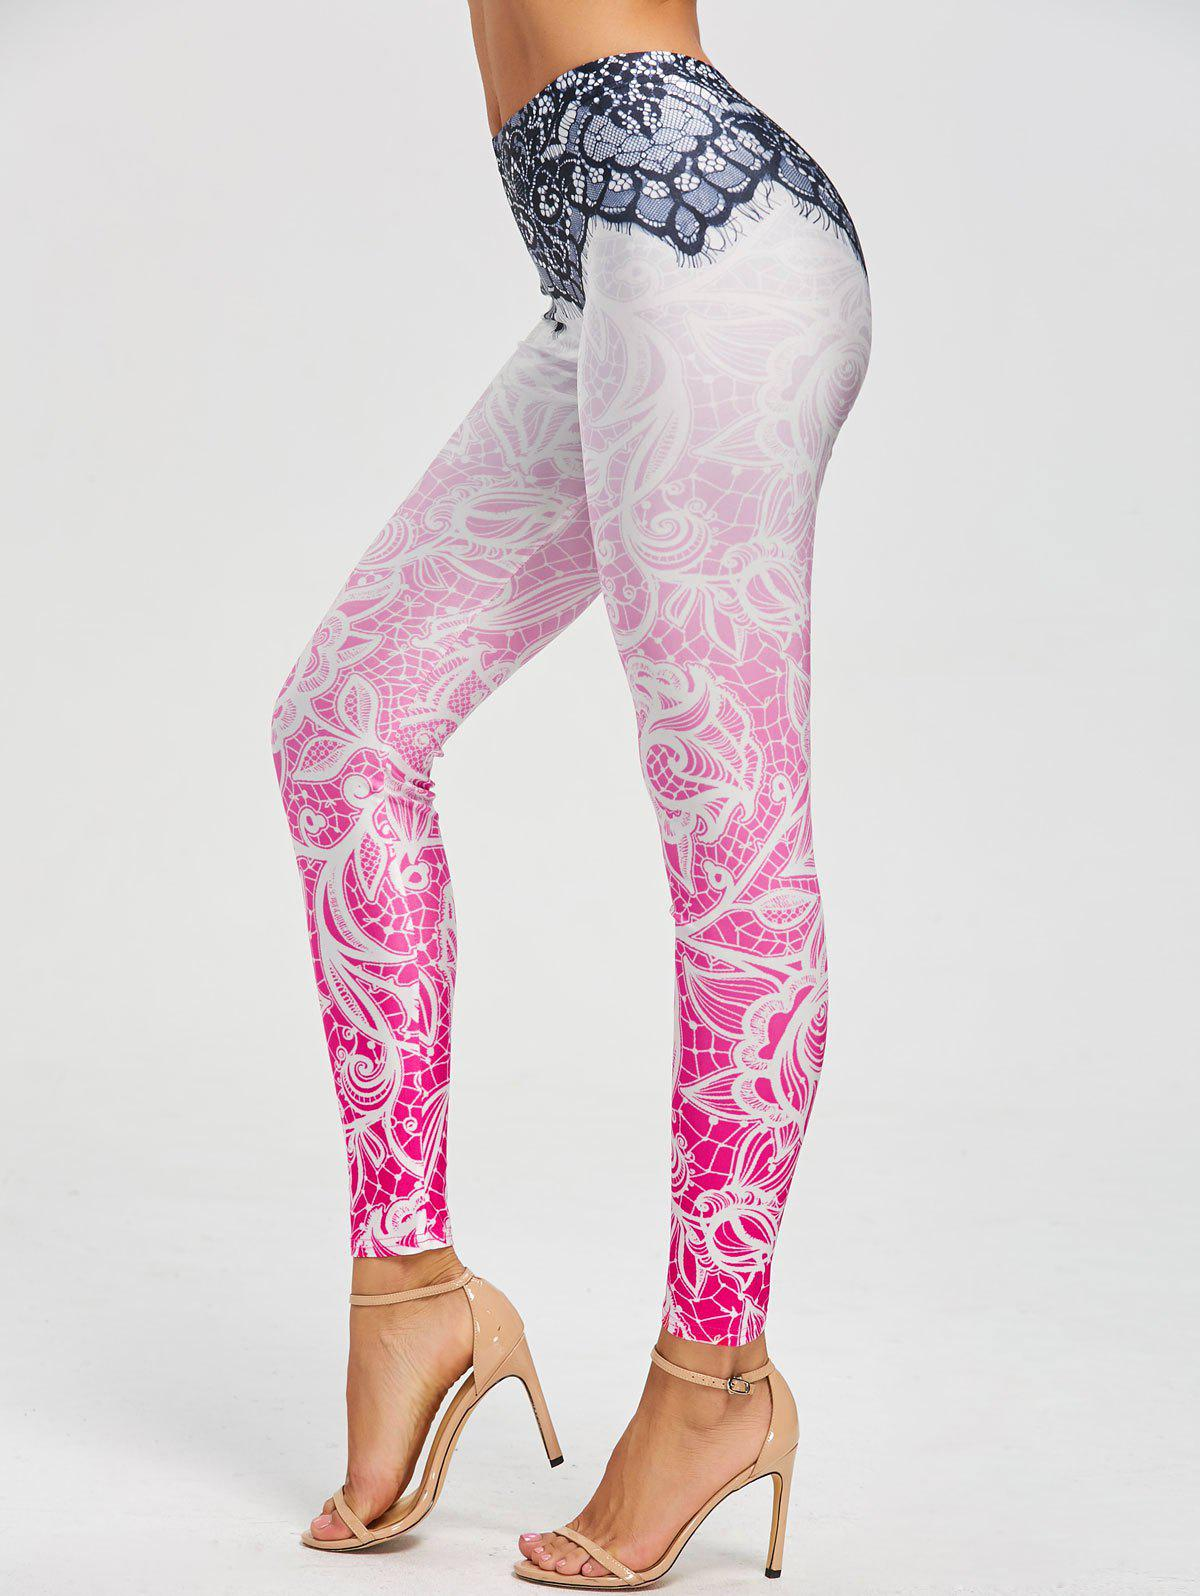 Bohemian Print Leggings - COLORMIX L